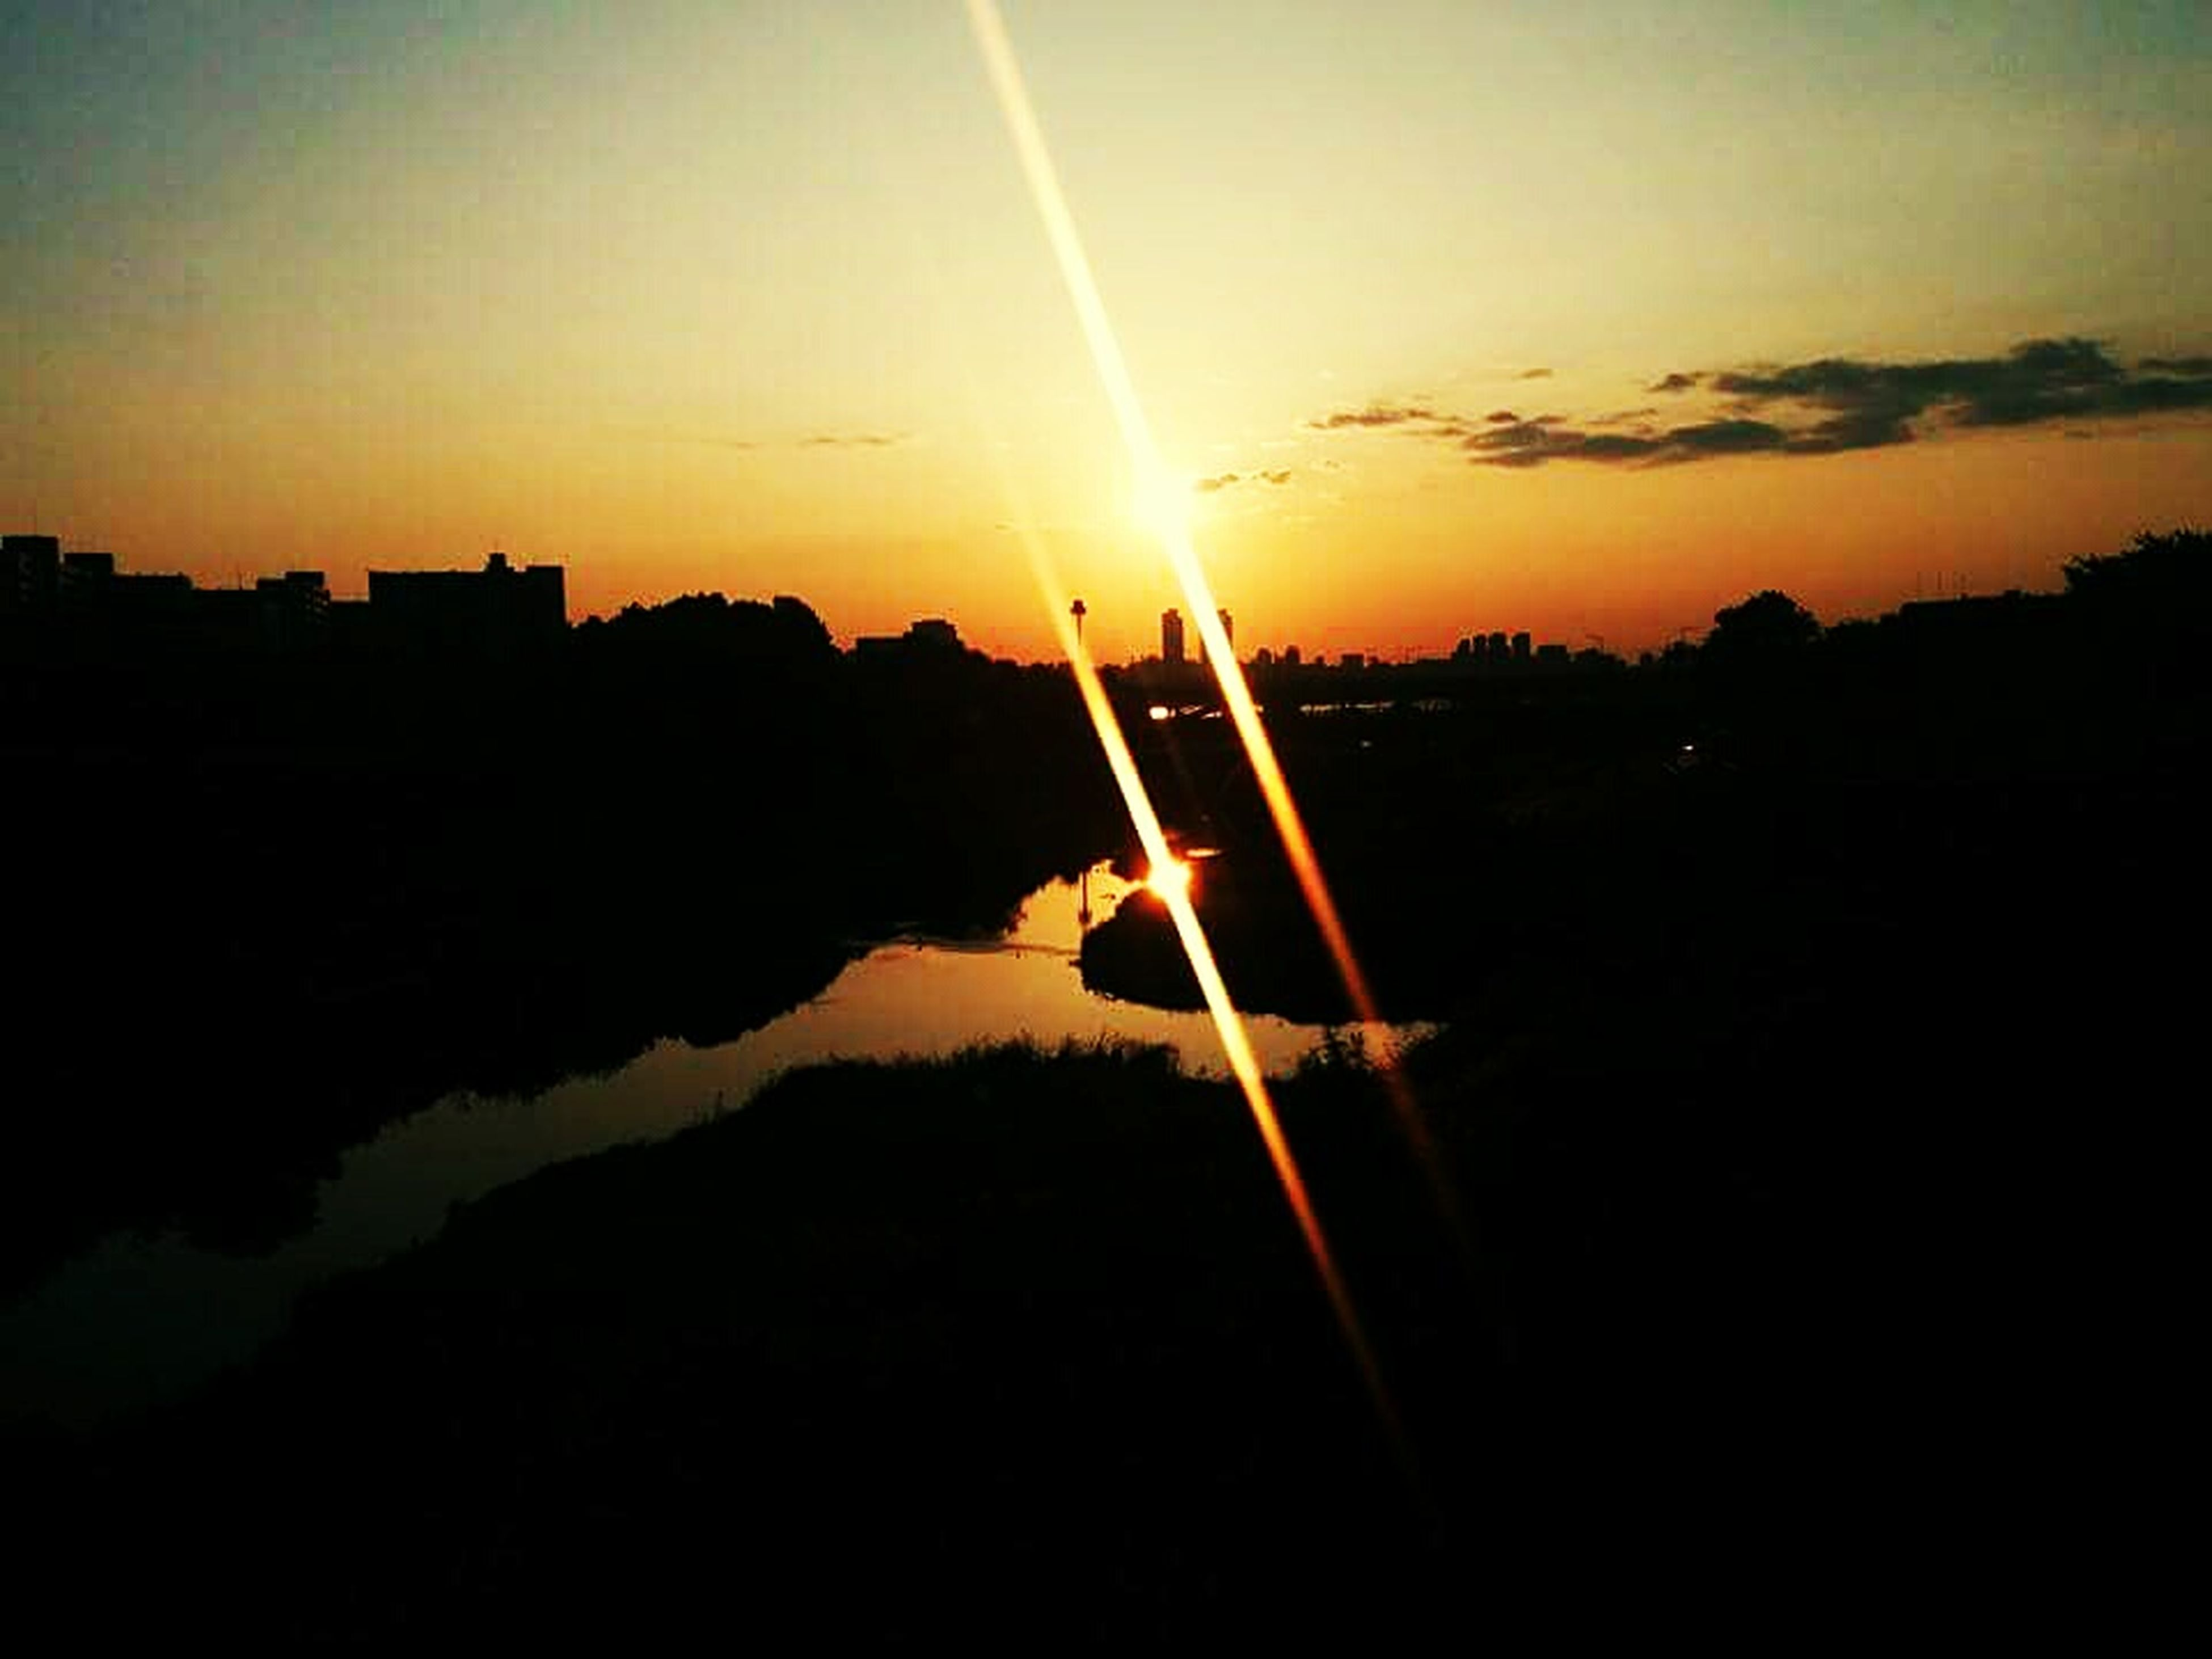 sunset, sun, silhouette, orange color, scenics, sky, beauty in nature, sunlight, tranquil scene, tranquility, sunbeam, lens flare, idyllic, water, nature, reflection, outdoors, romantic sky, back lit, bright